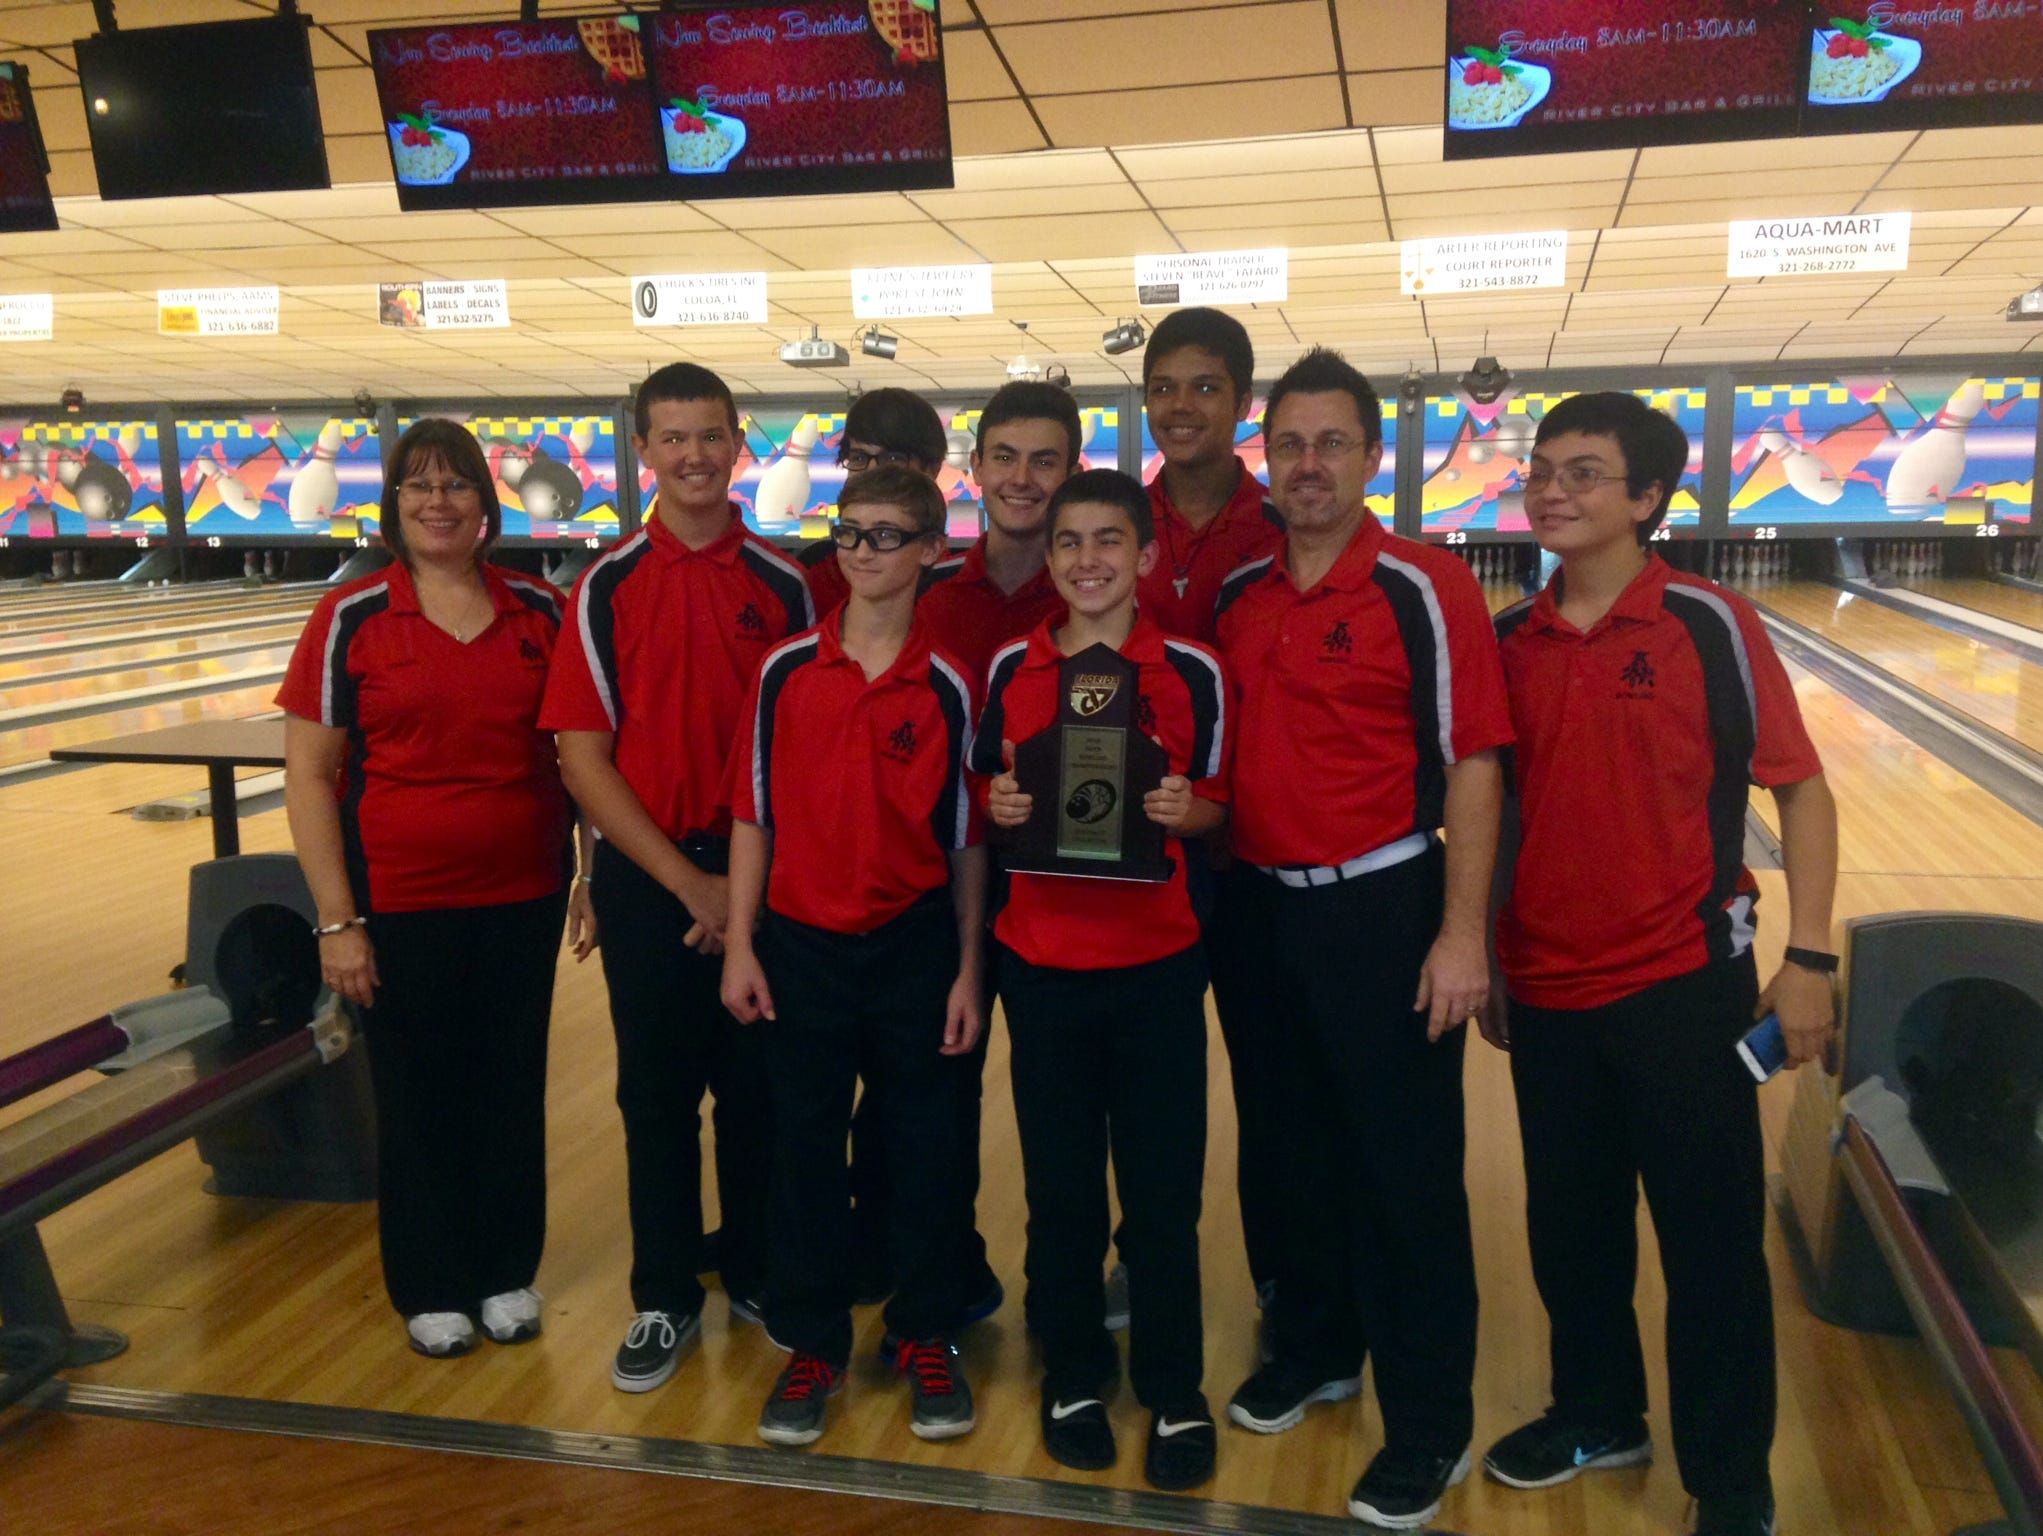 Edgewood's boys won the 2015 District 10 bowling title.